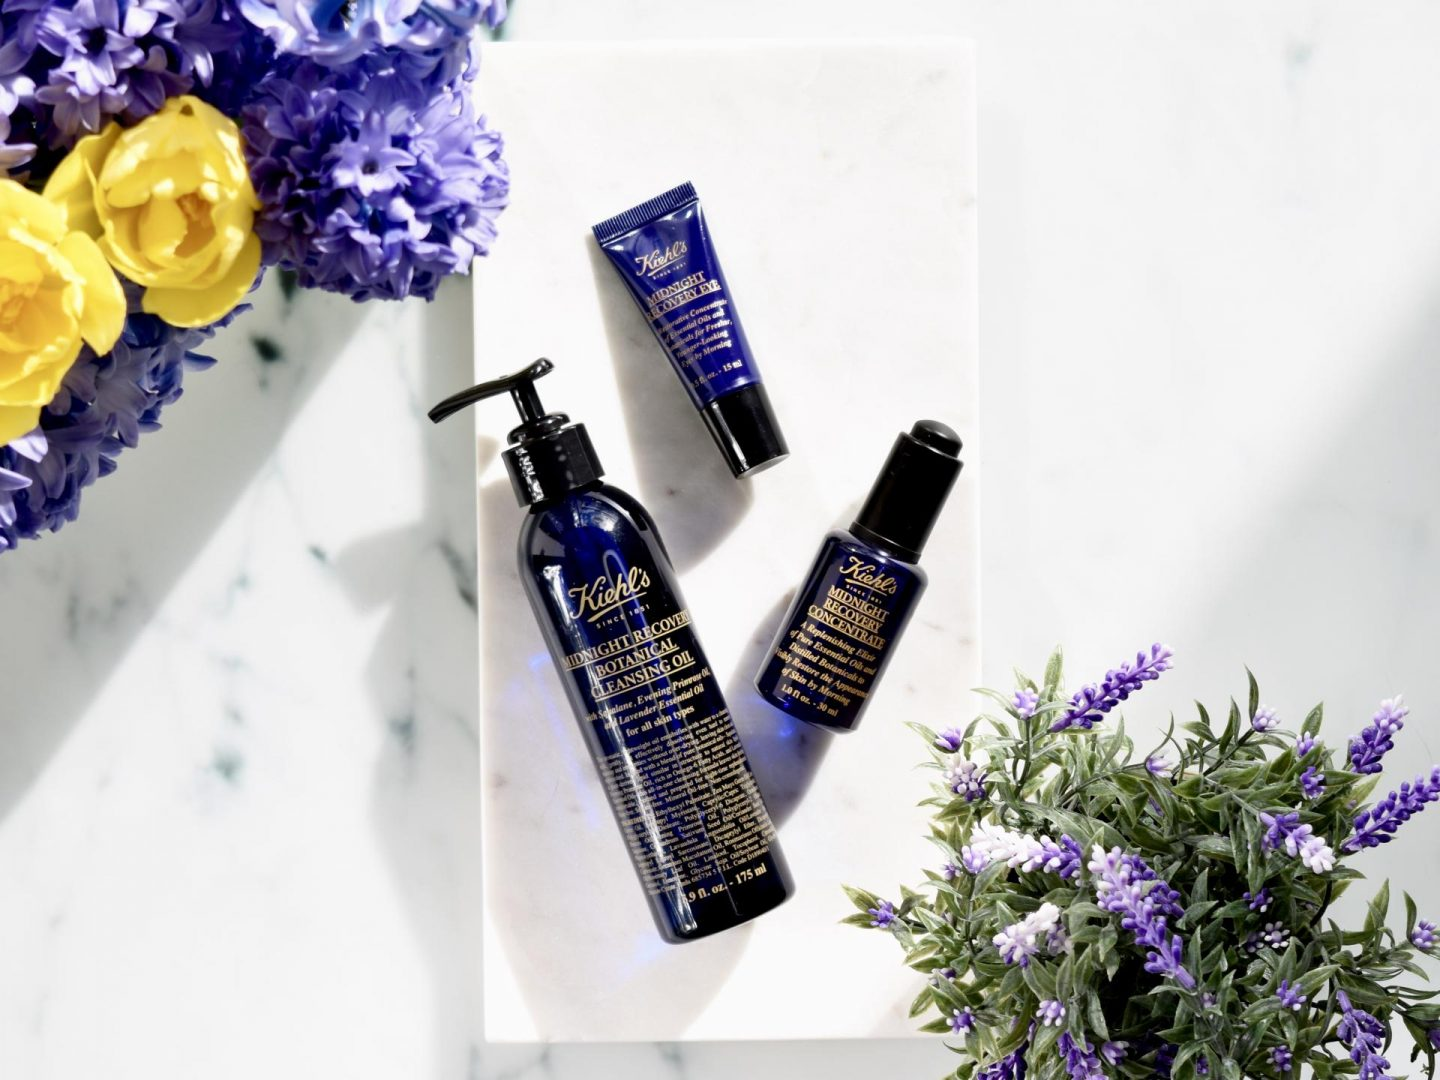 Kiehl's Midnight Recovery Range Review